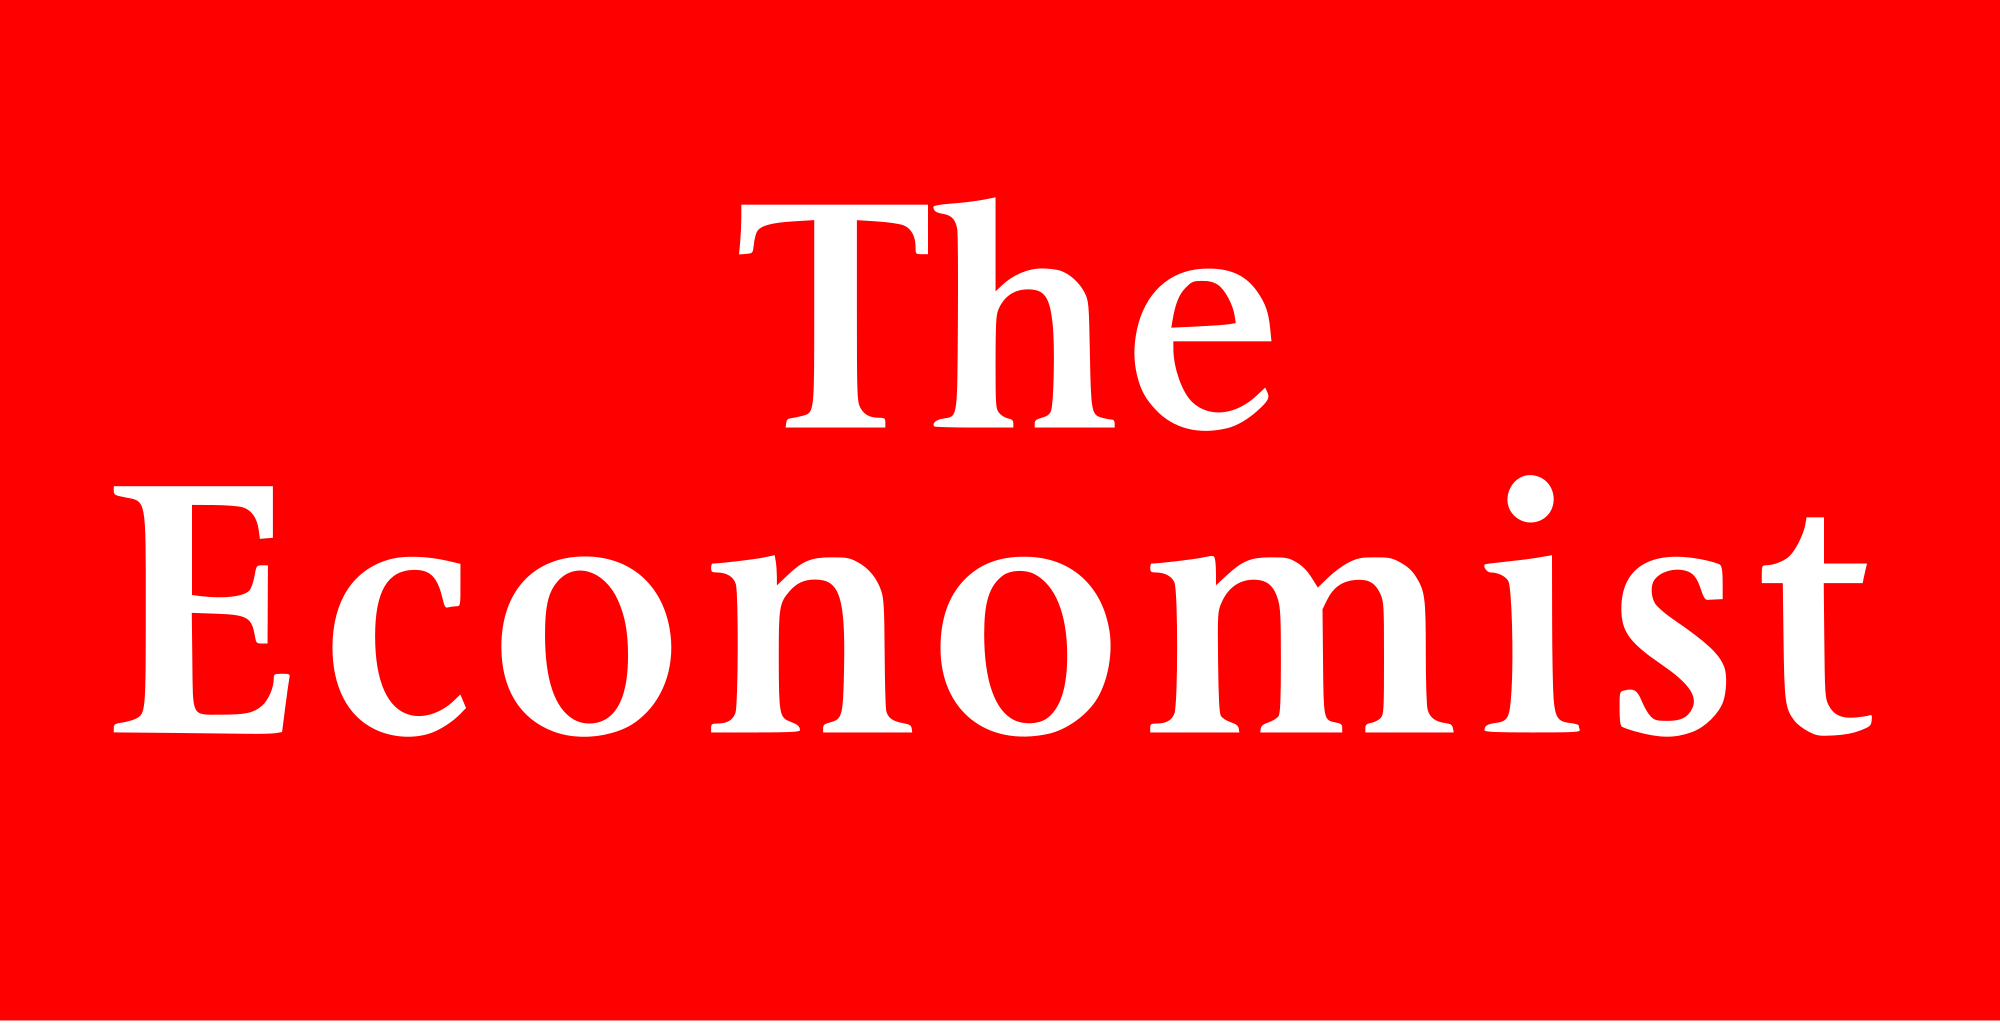 The_Economist_Data_Protection_Information_Security